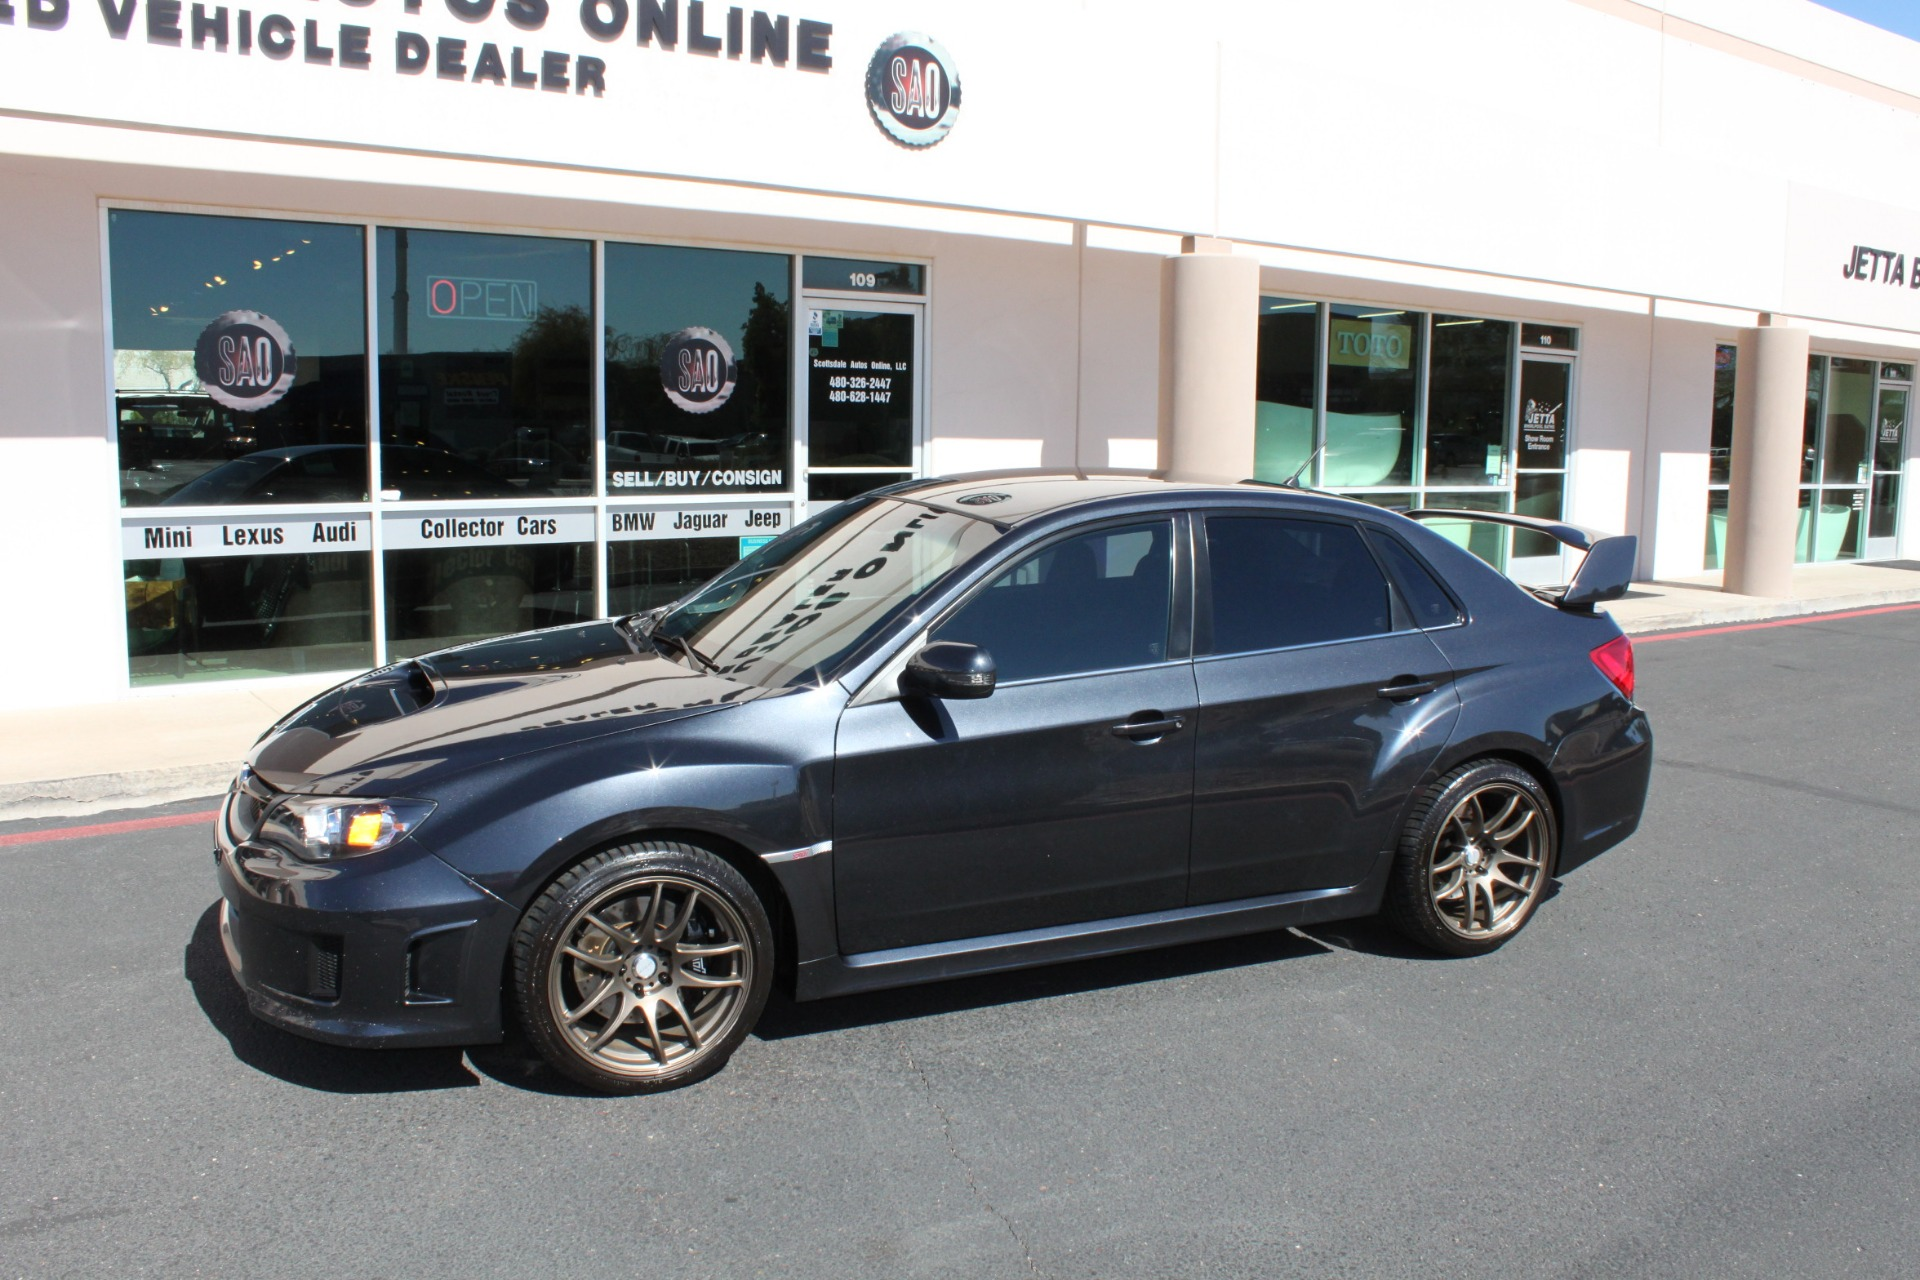 Used-2011-Subaru-Impreza-Sedan-WRX-STI-Dodge